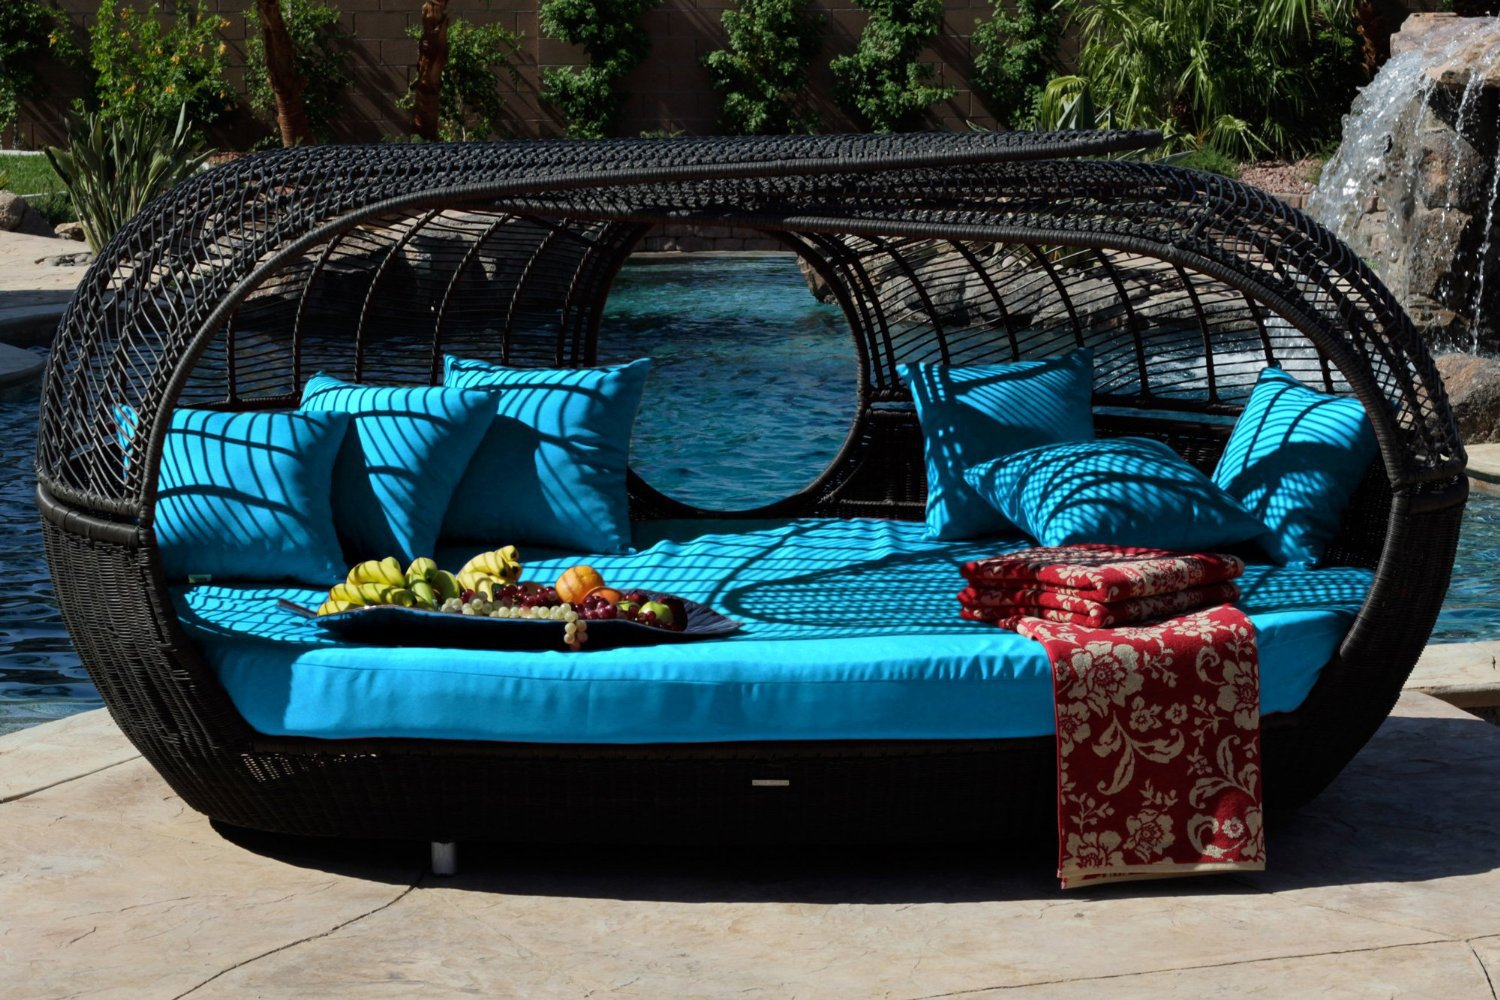 - Top 10 Reasons For Buying Resin Wicker Patio Furniture.